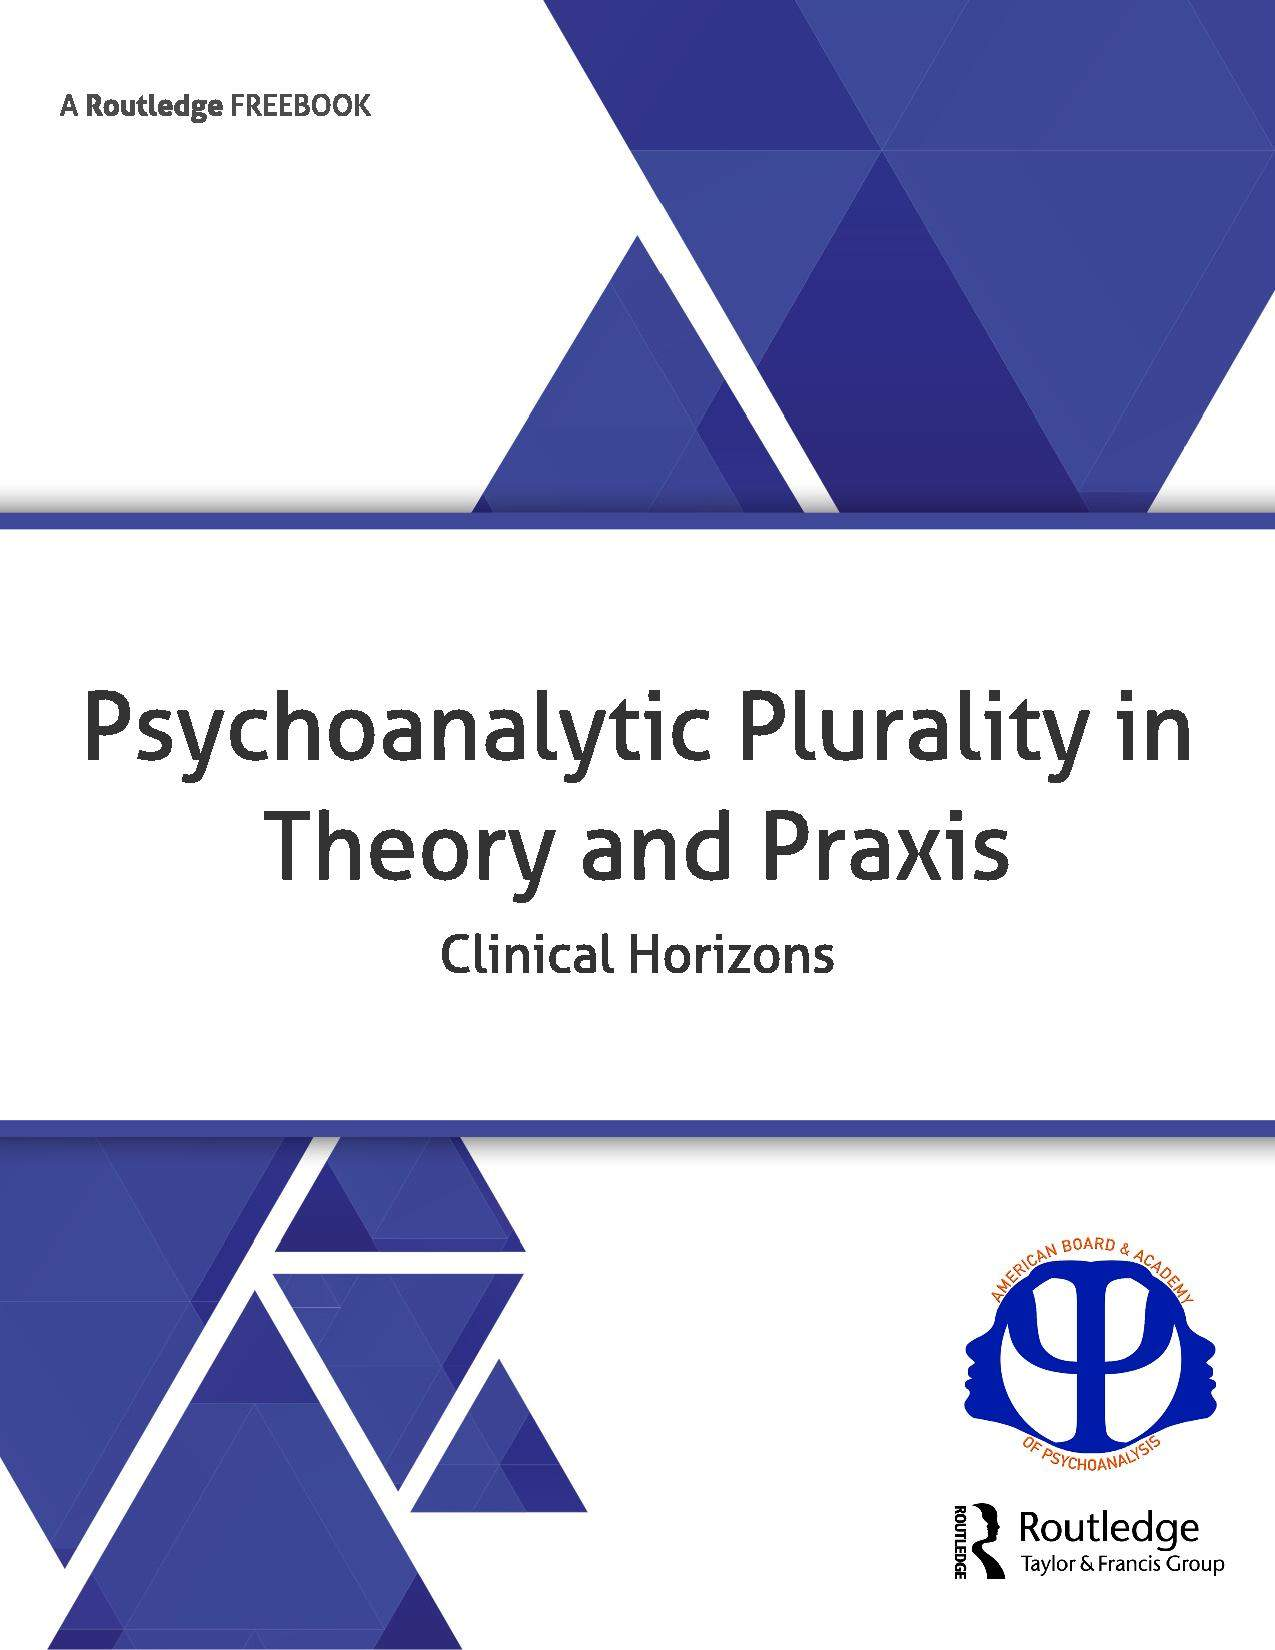 Psychoanalytic Plurality in Theory and Praxis